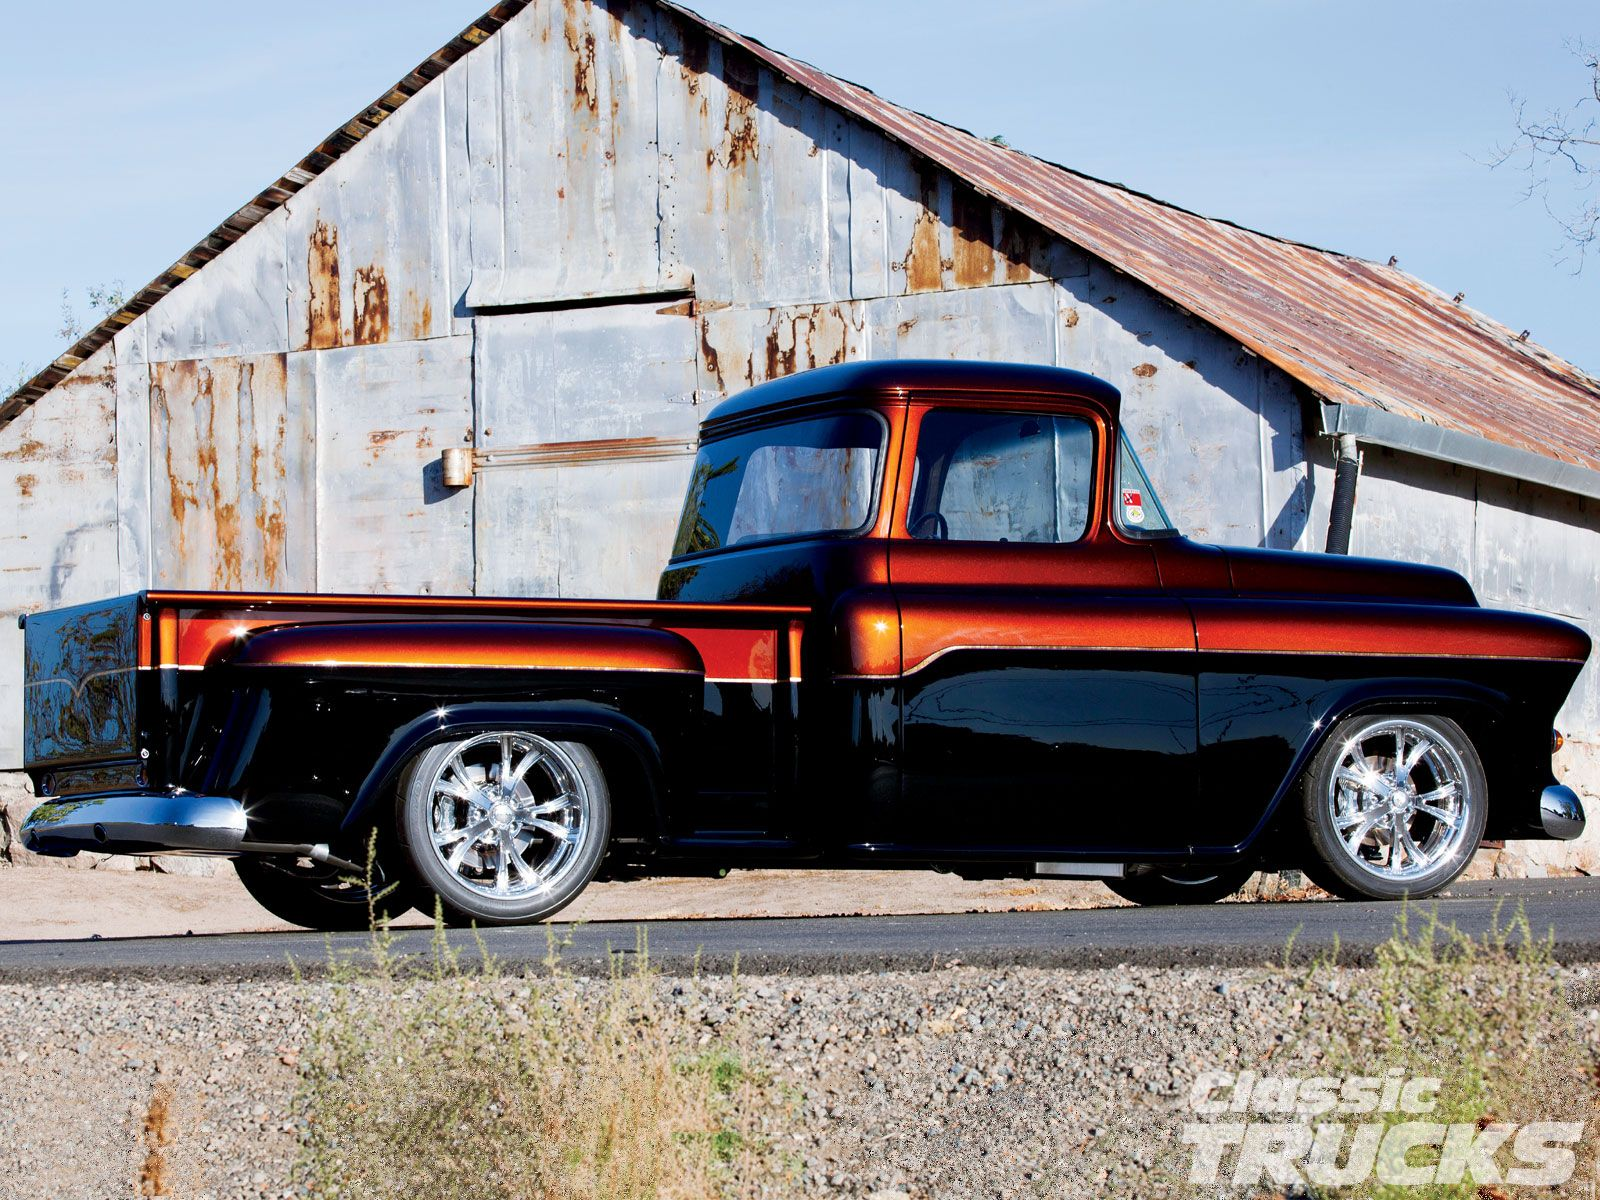 1955 chevrolet hot rod truck pictures to pin on pinterest - 1955 Chevy Truck 1955 Chevrolet Truck Passenger Side